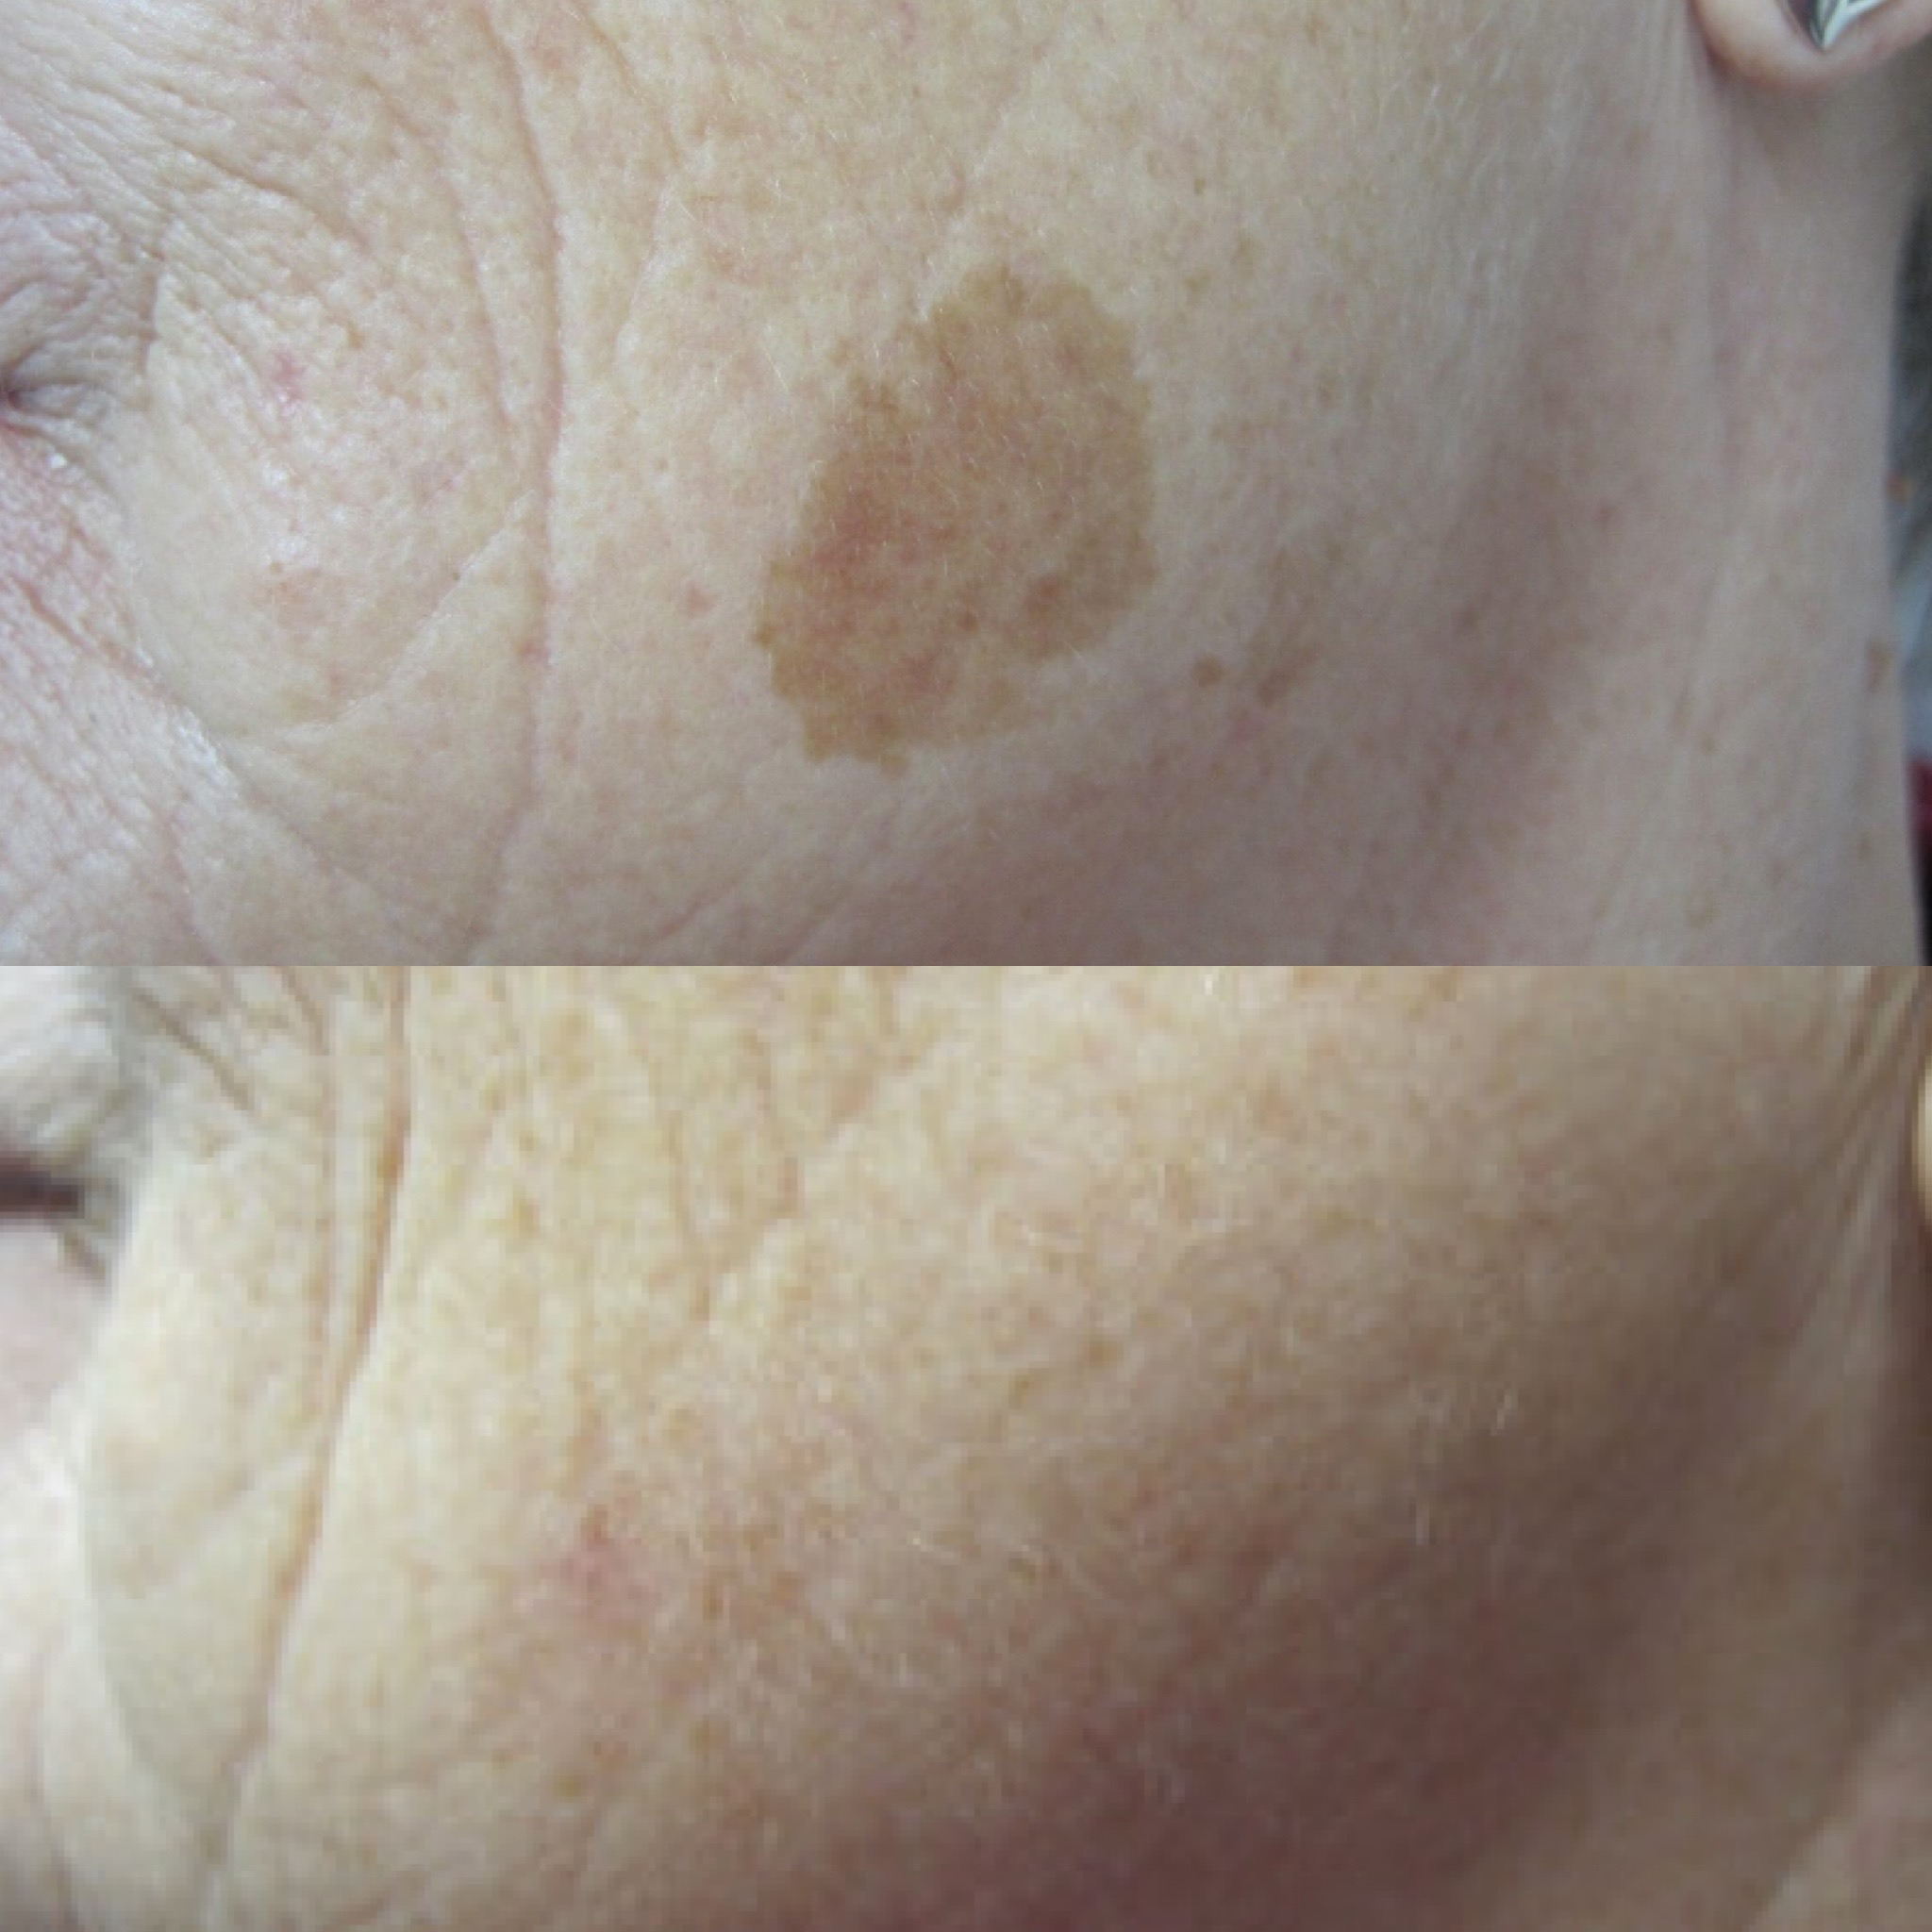 Pigment Removal